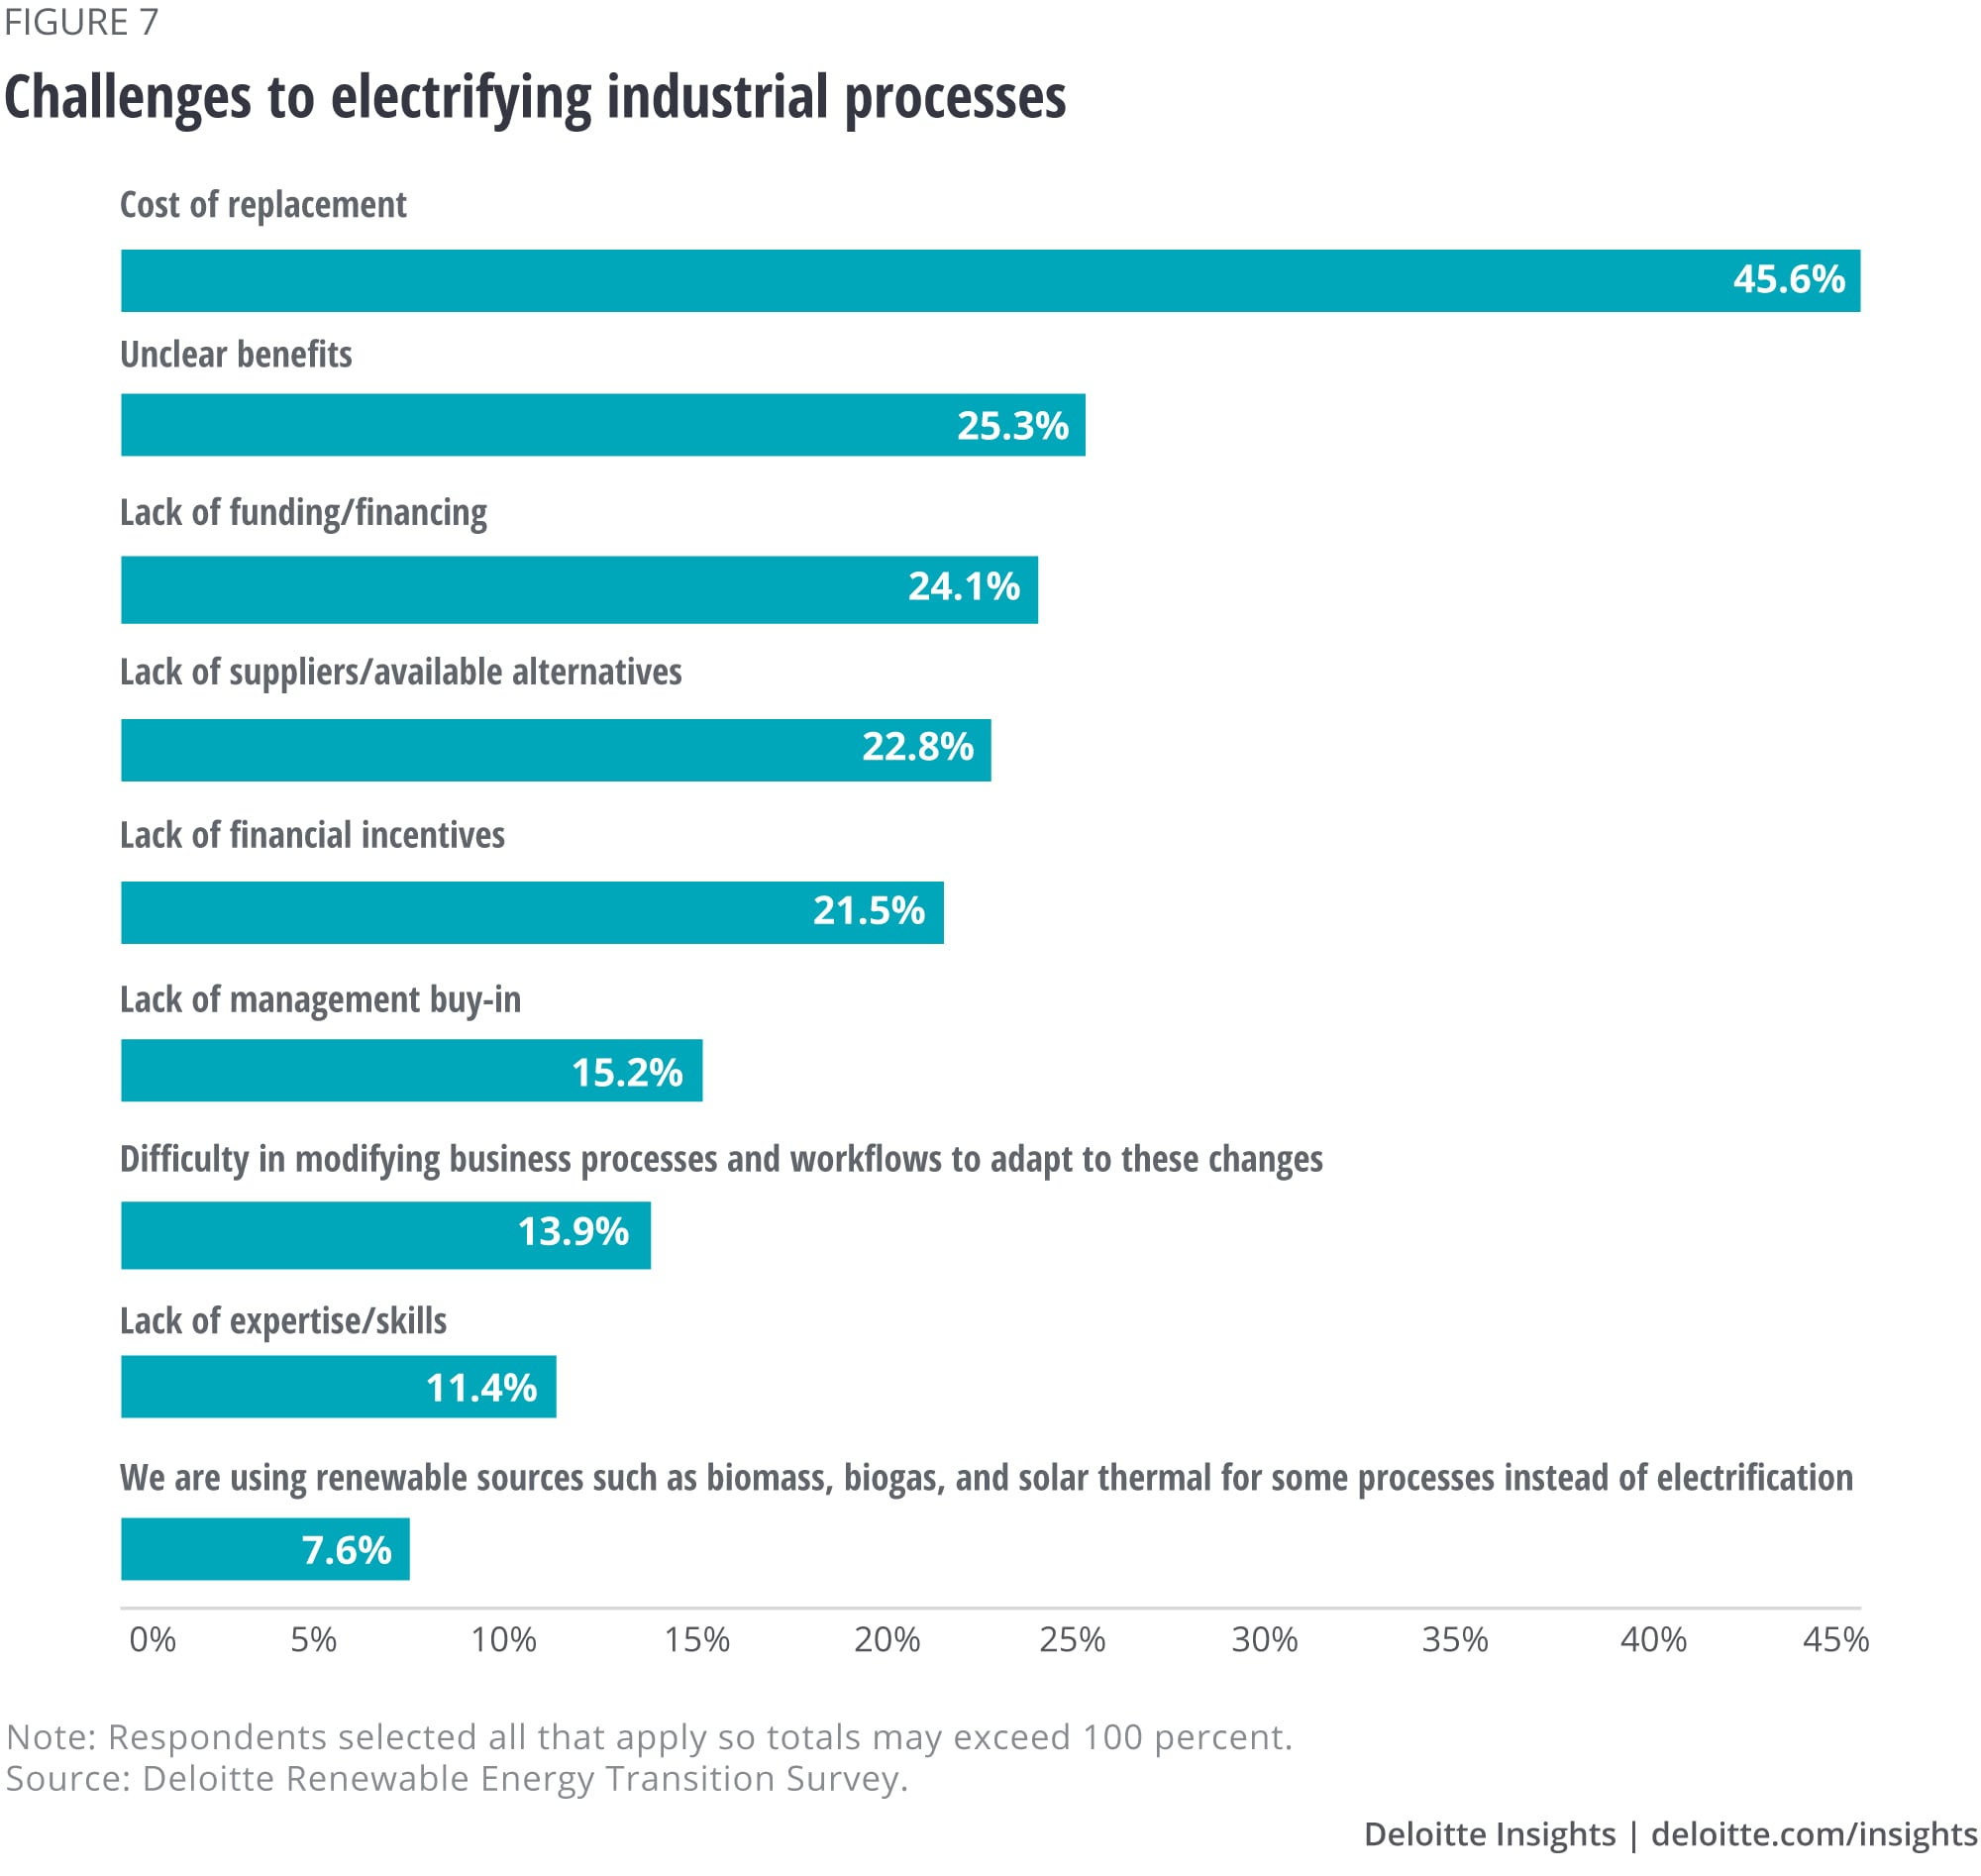 Challenges to electrifying industrial processes